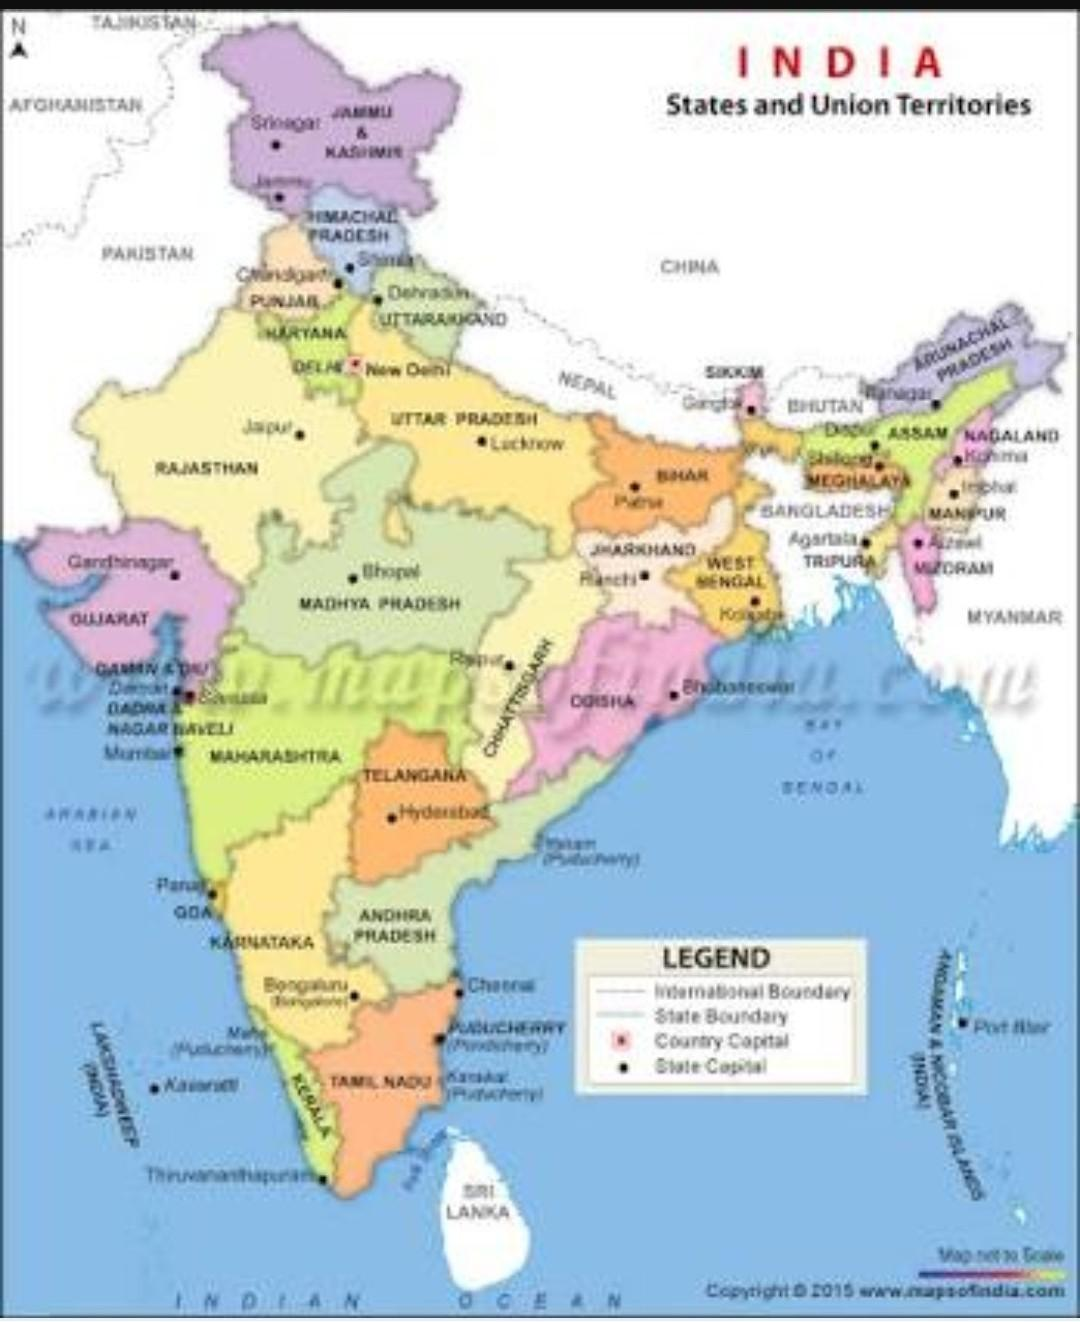 political map indian states and capitals Mark Indian States With Their Capitals On Political Map Of India political map indian states and capitals